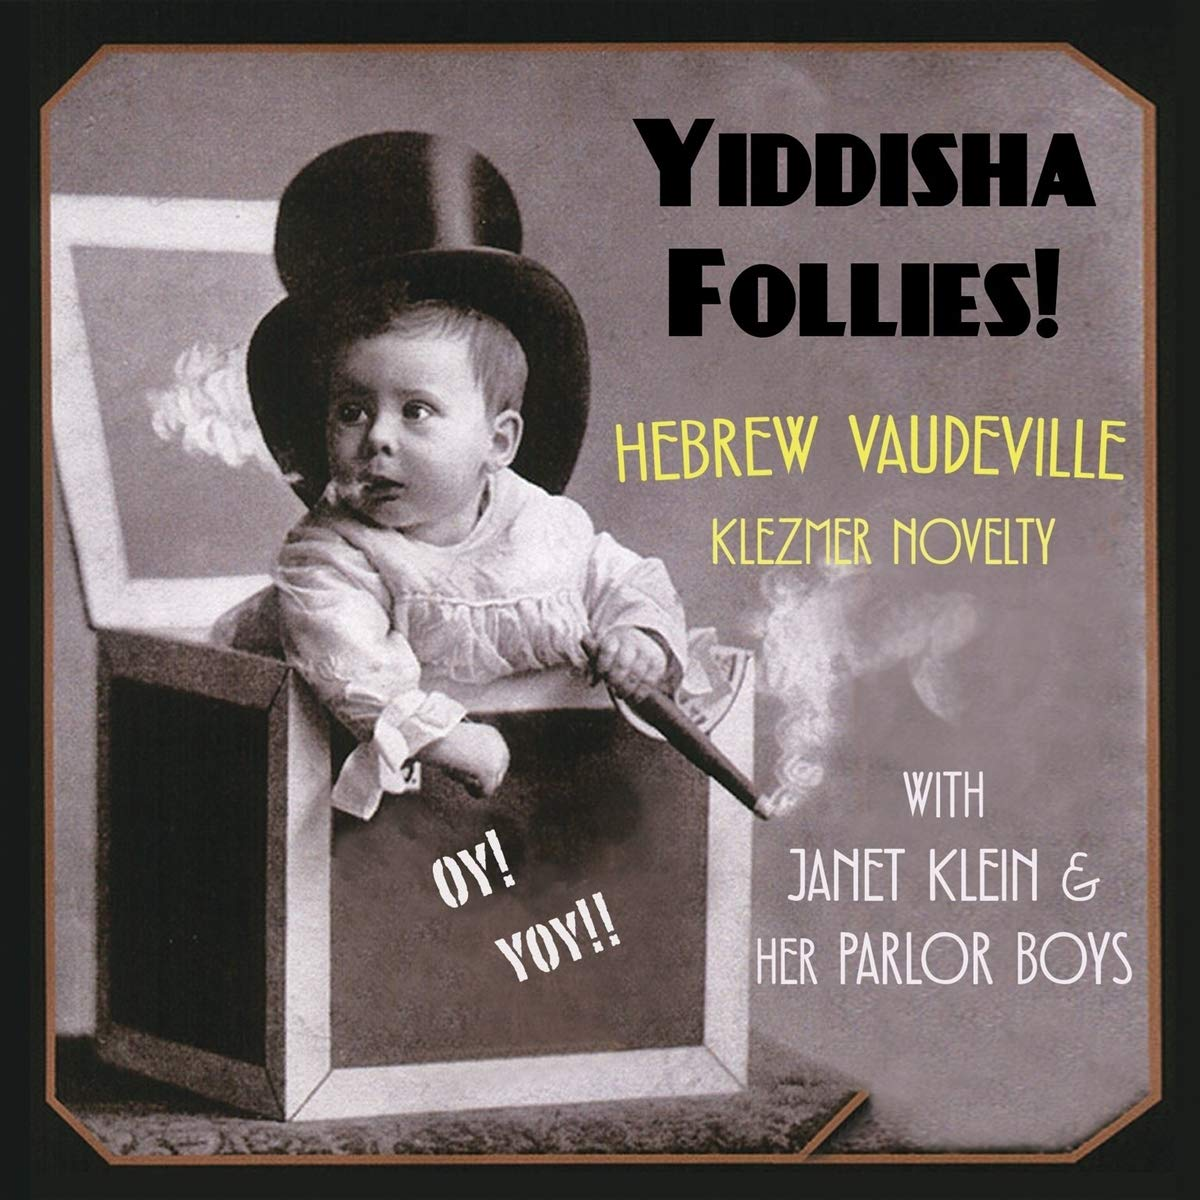 JANET KLEIN - Janet Klein & Her Parlor Boys : Yiddisha Follies cover